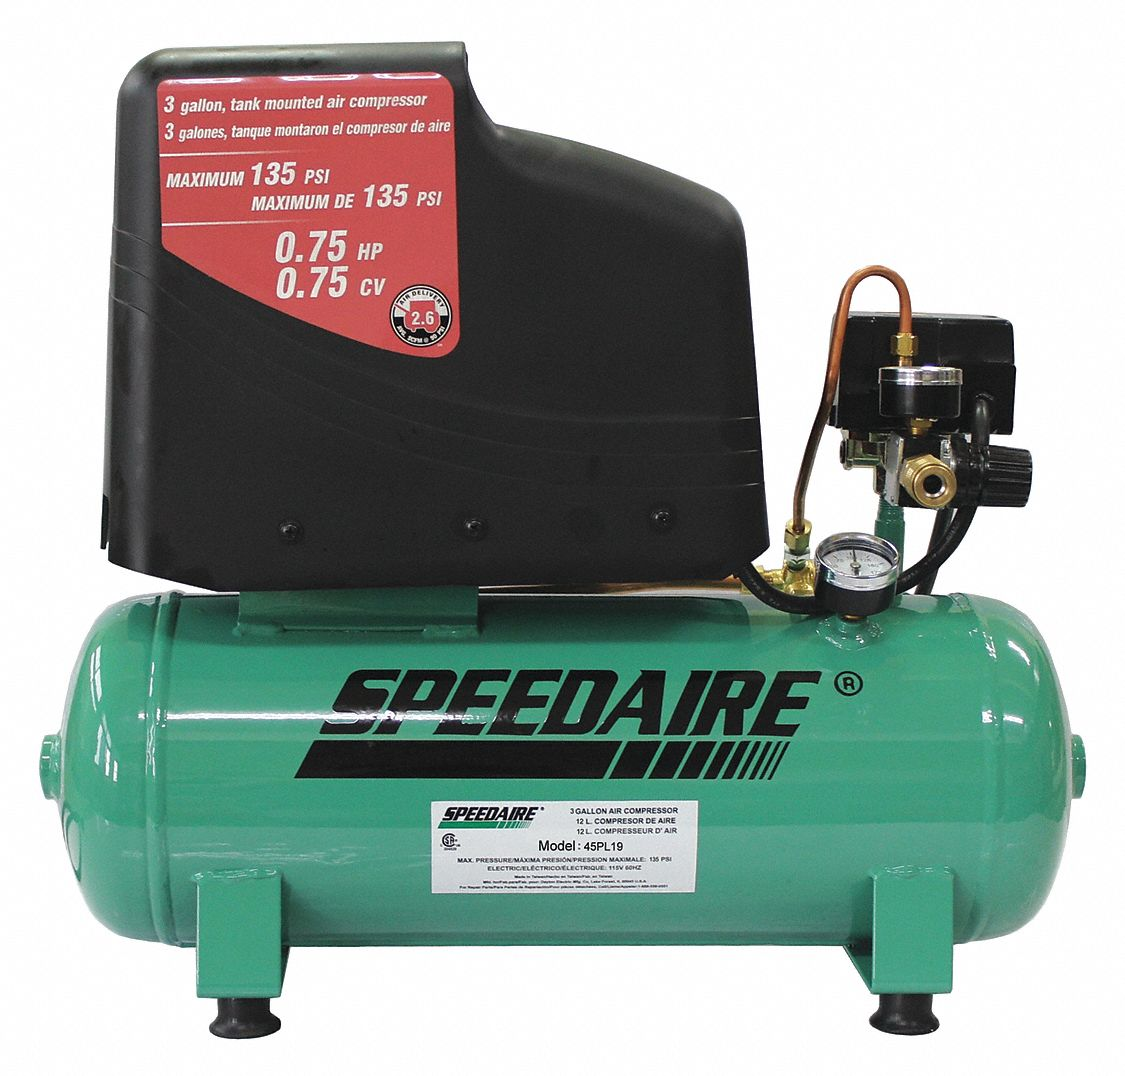 0.75 HP, 115VAC, 3 gal. Portable Electric Air Compressor